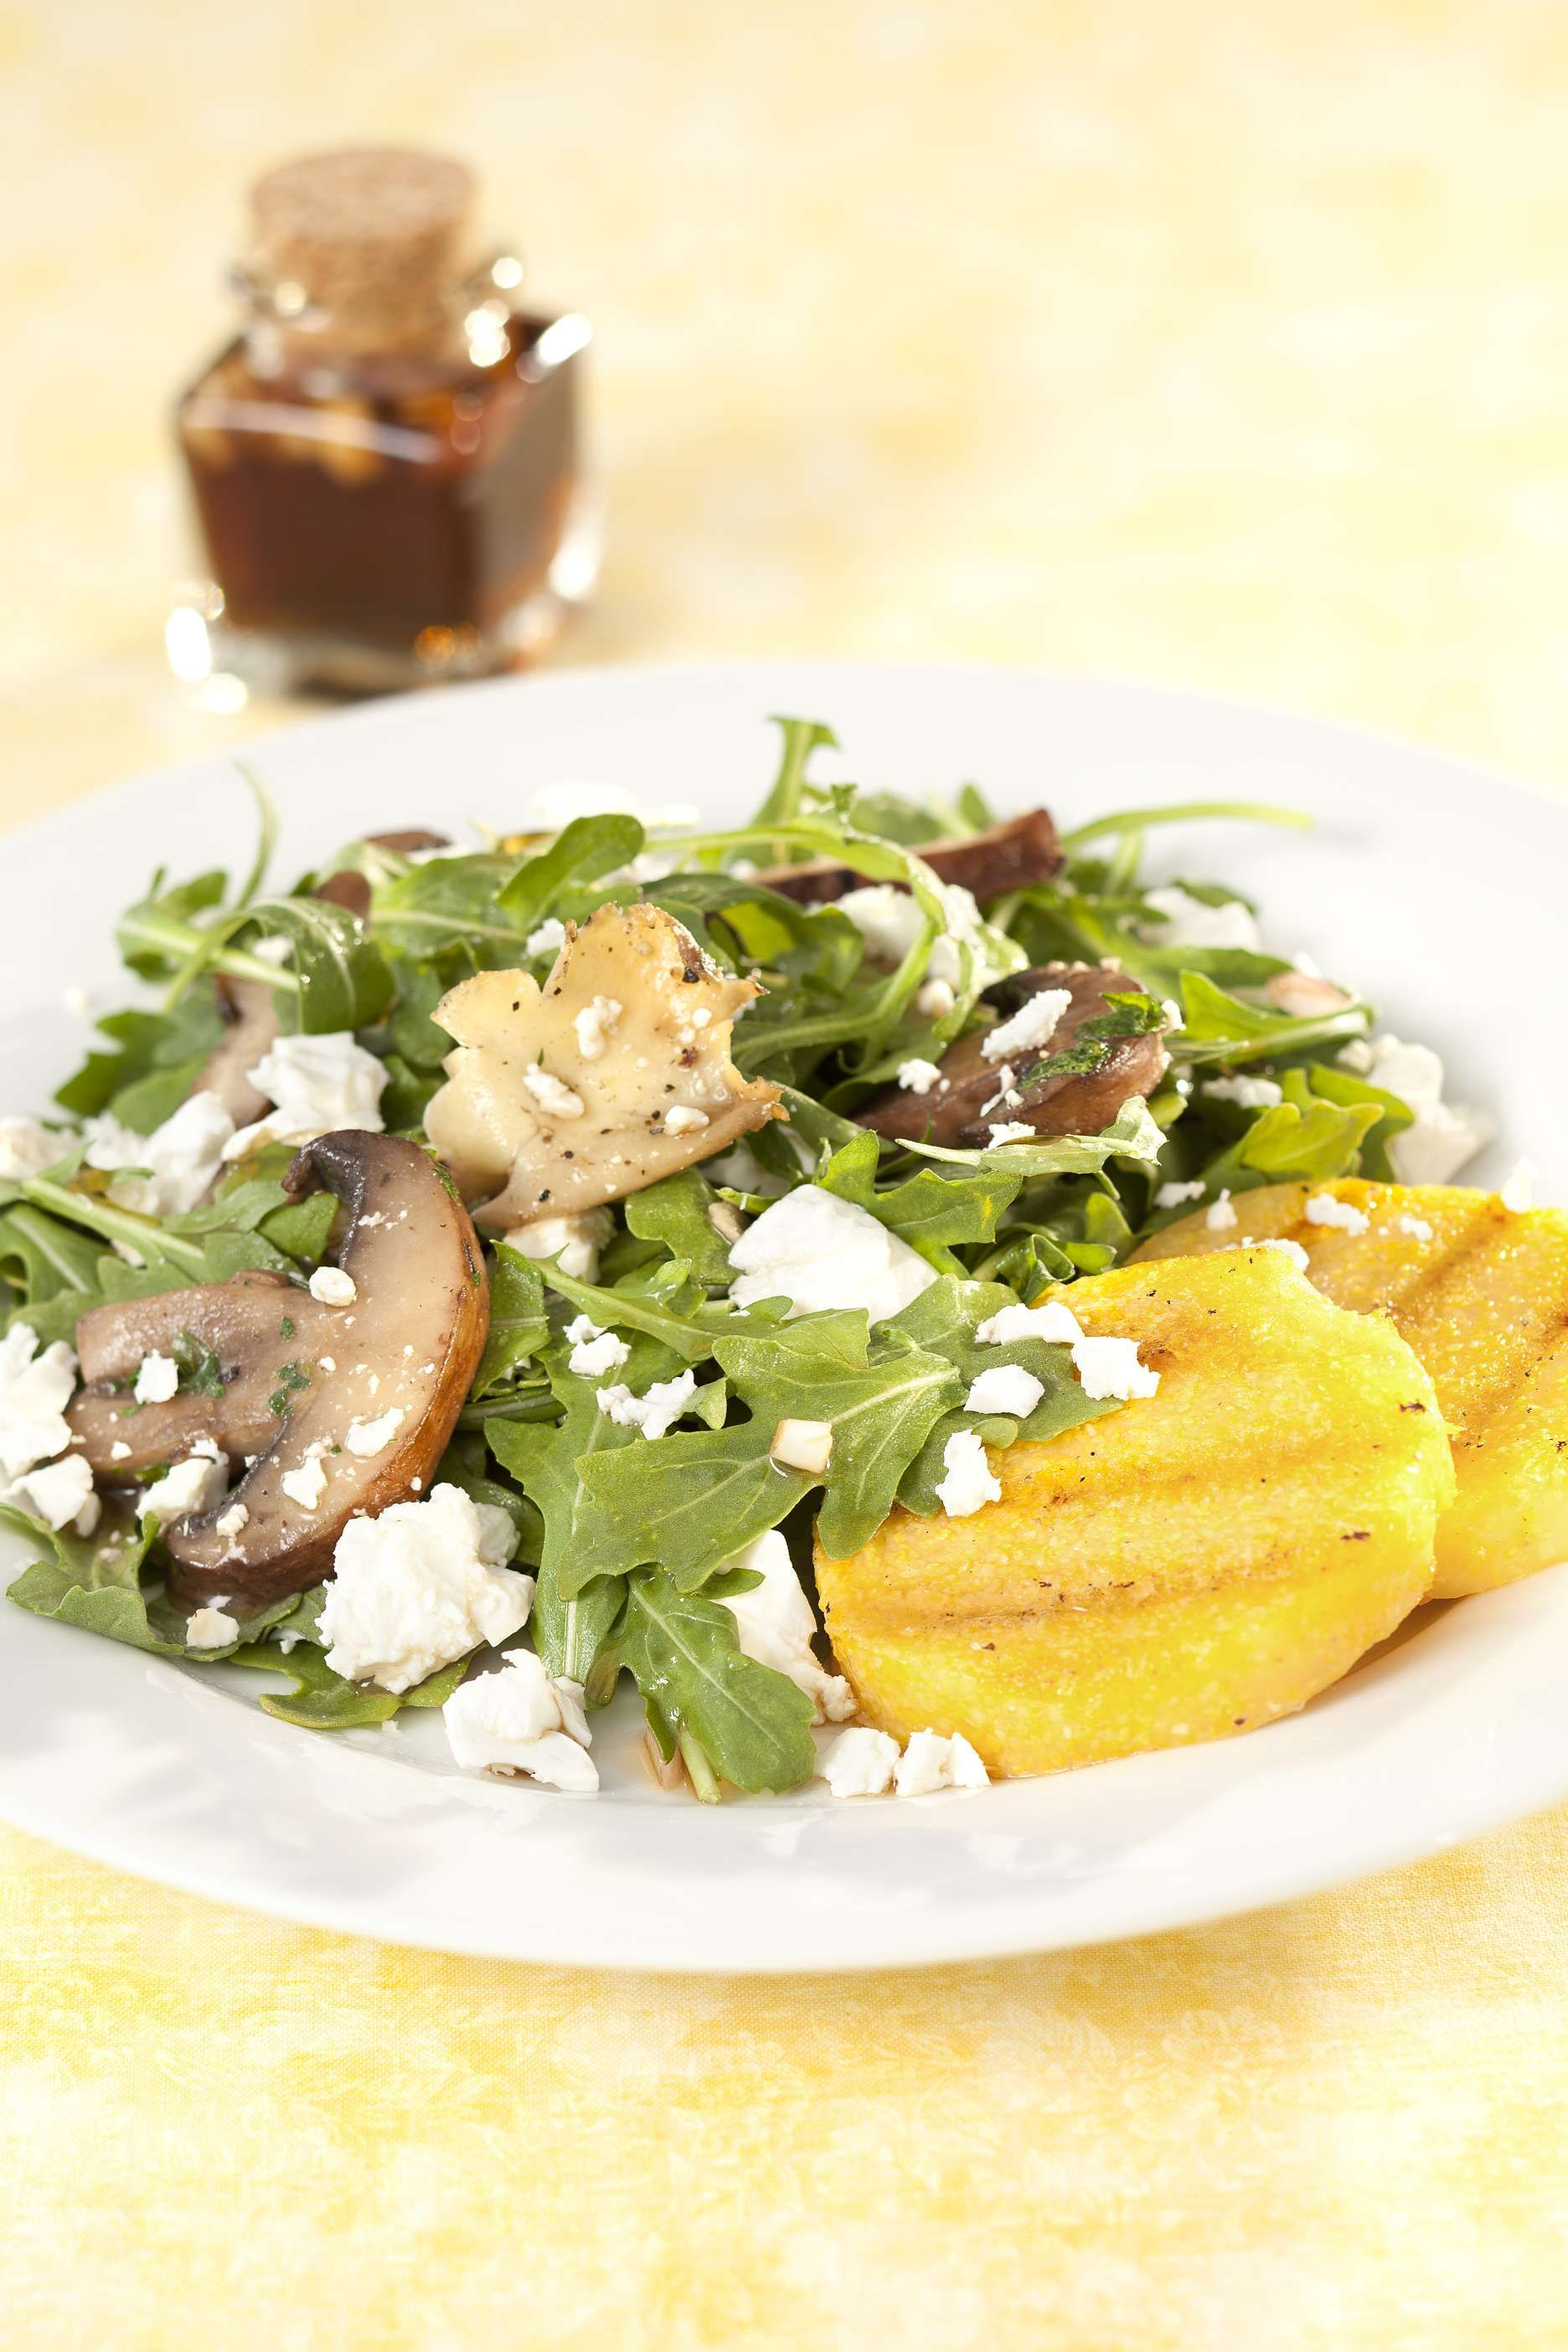 Grilled Polenta Rounds with Gourmet Mushrooms Salad and Feta featuring Président® Crumbled Feta